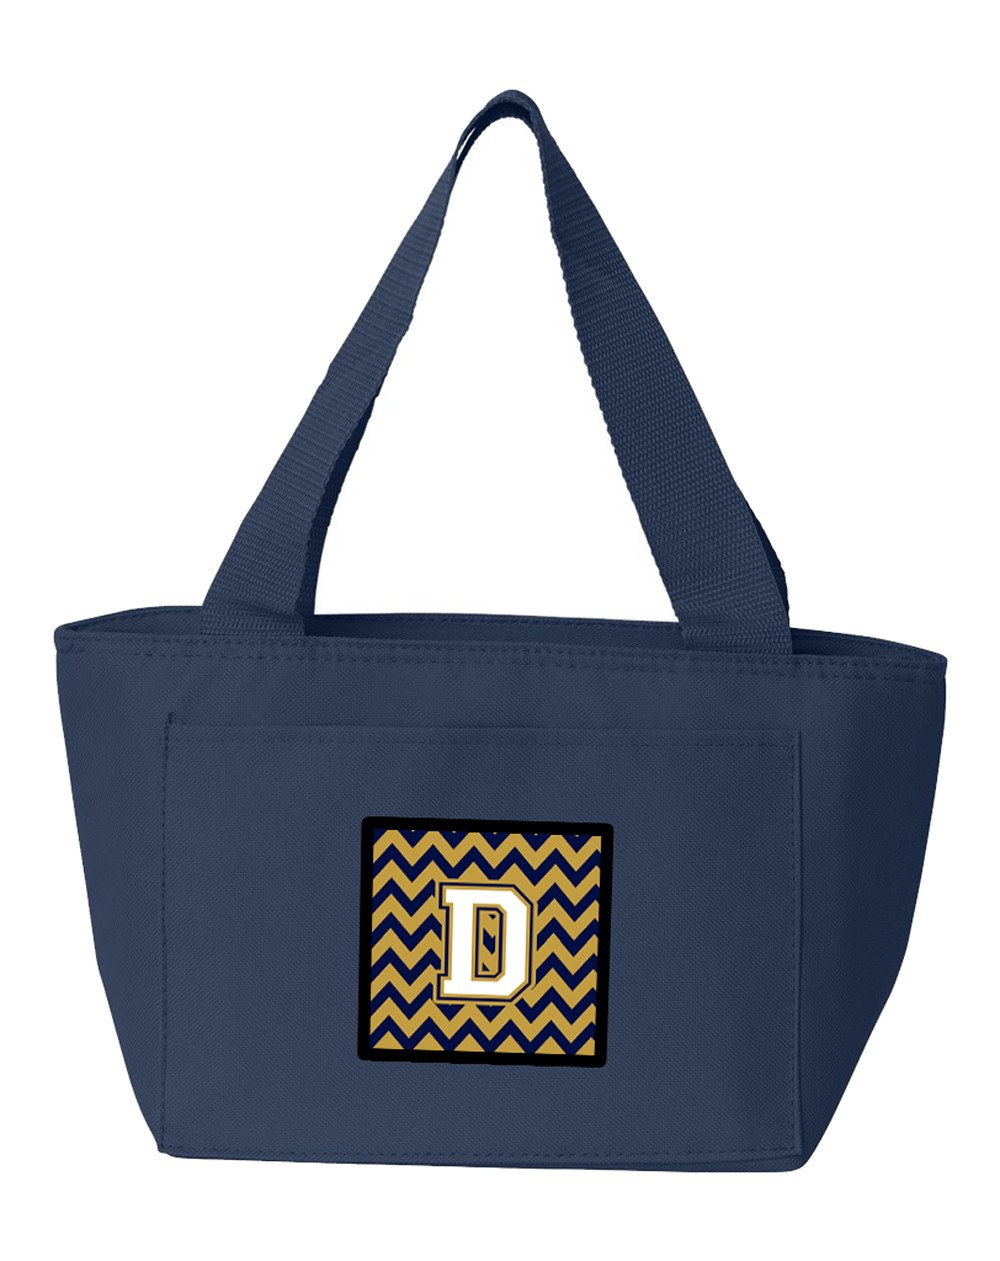 Letter D Chevron Navy Blue and Gold Lunch Bag CJ1057-DNA-8808 by Caroline's Treasures